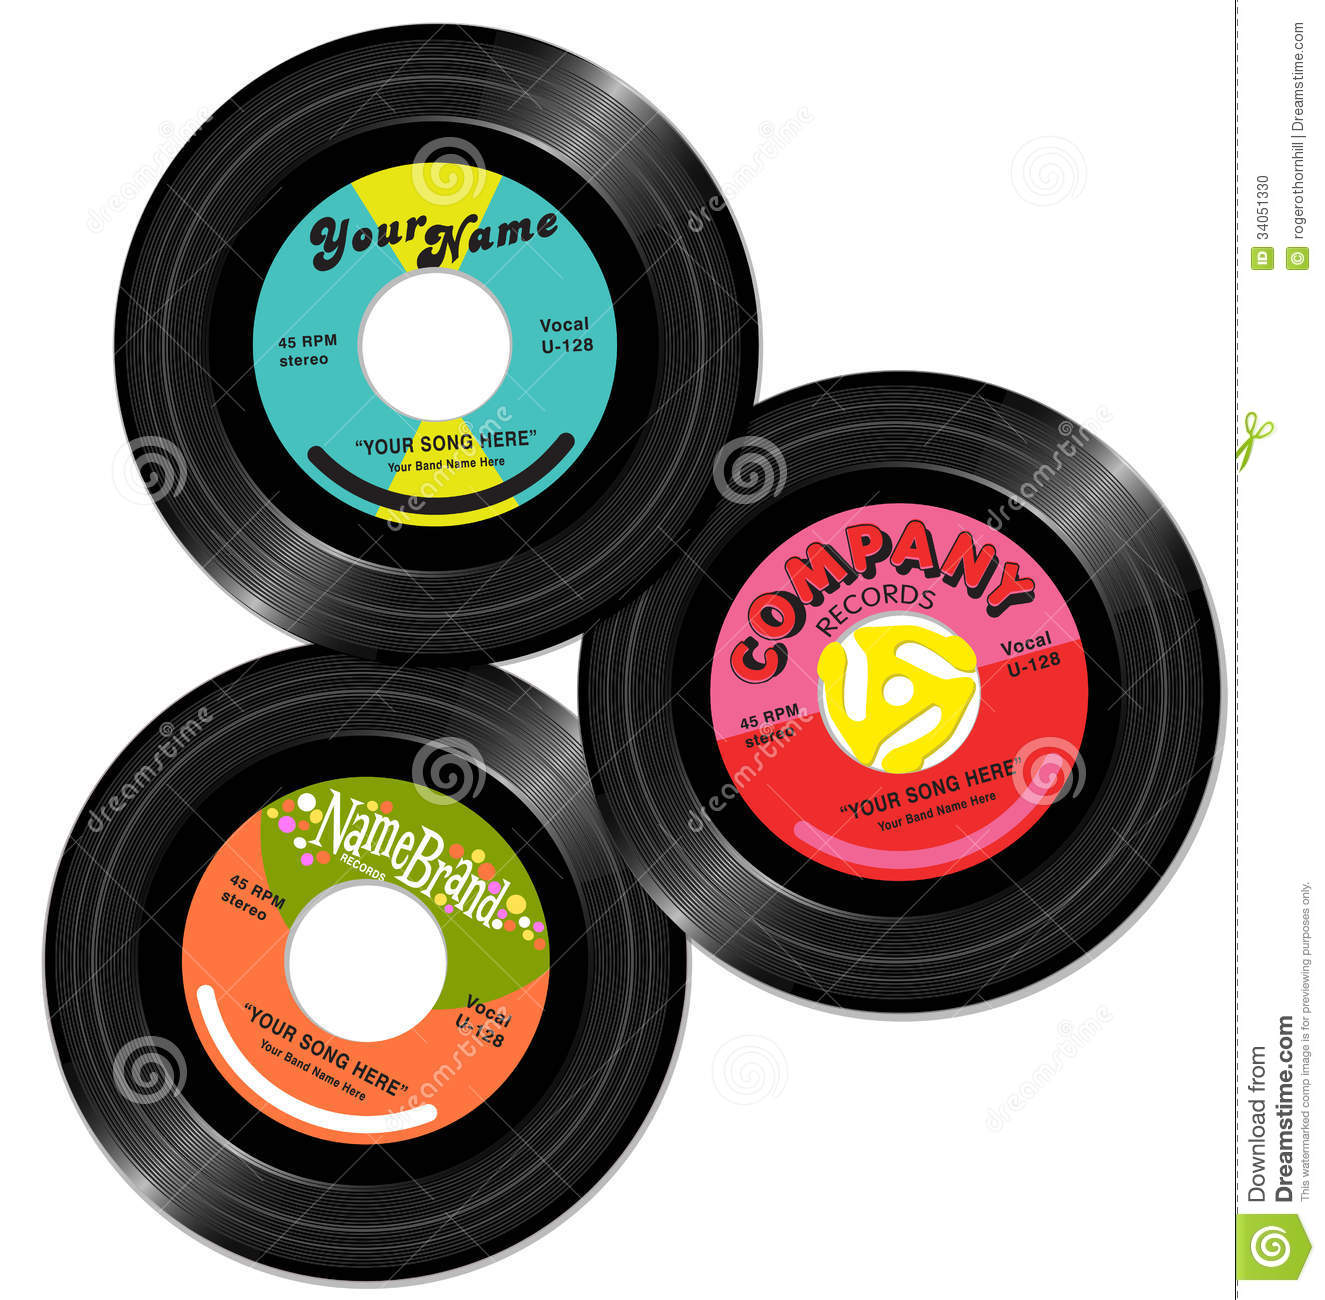 Vintage 45 record label designs set 1 stock photo image for Classic house record labels